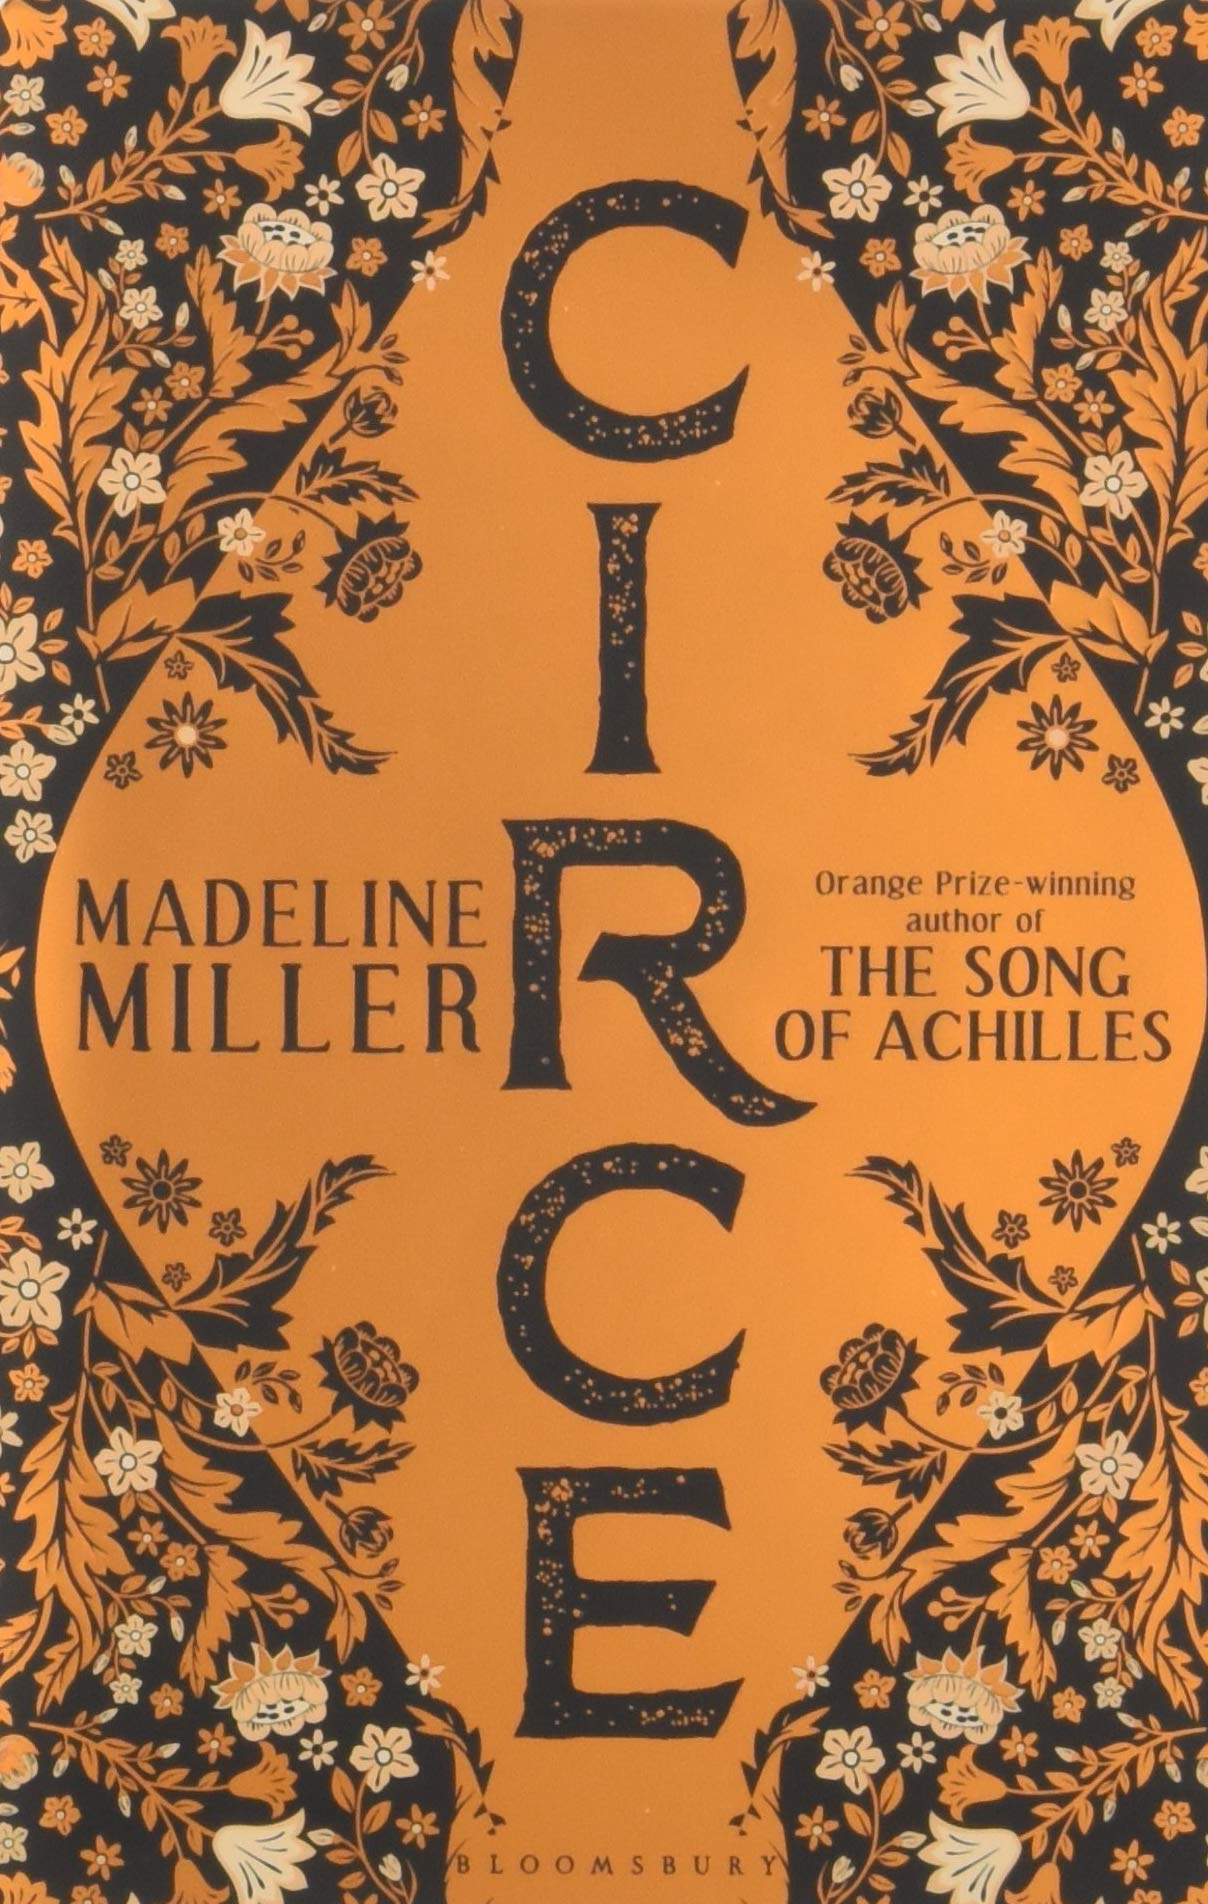 Circe: The International No. 1 Bestseller - Shortlisted for the Women's  Prize for Fiction 2019: Amazon.co.uk: Miller, Madeline: 9781408890080: Books